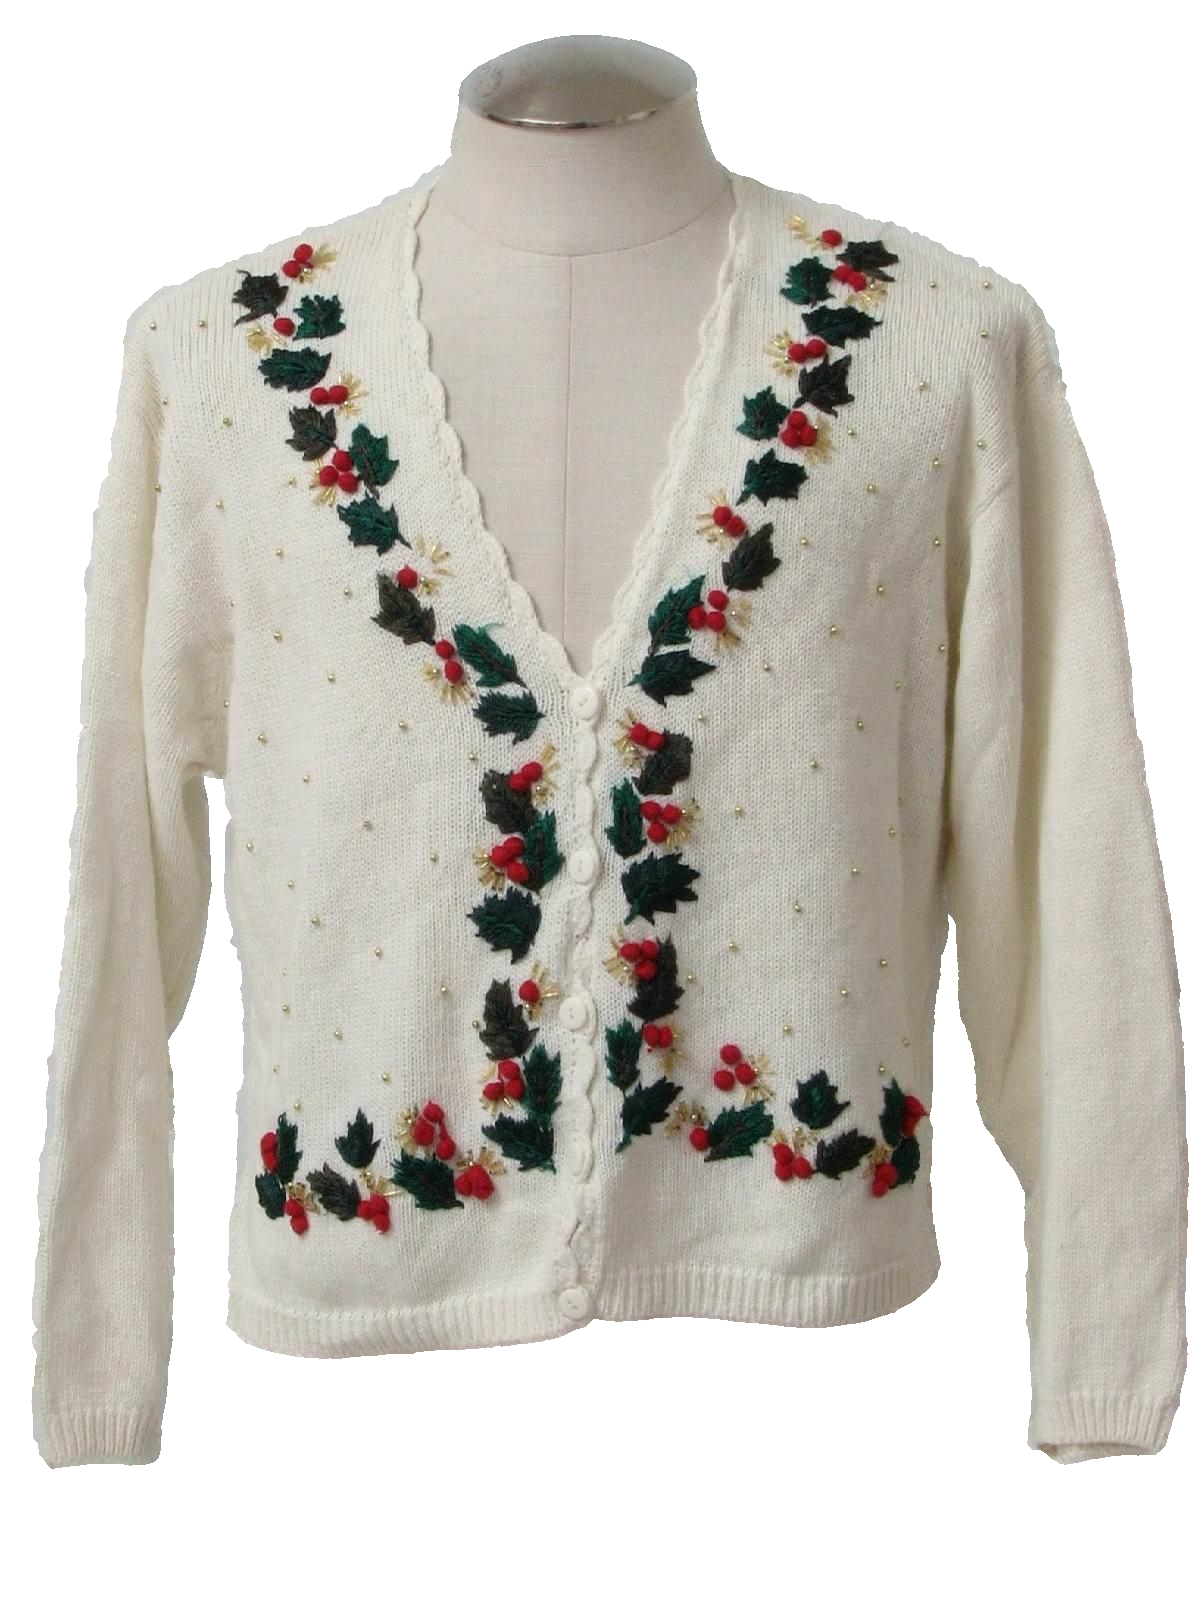 Womens Ugly Christmas Cardigan Sweater: -Dress barn- Womens off ...